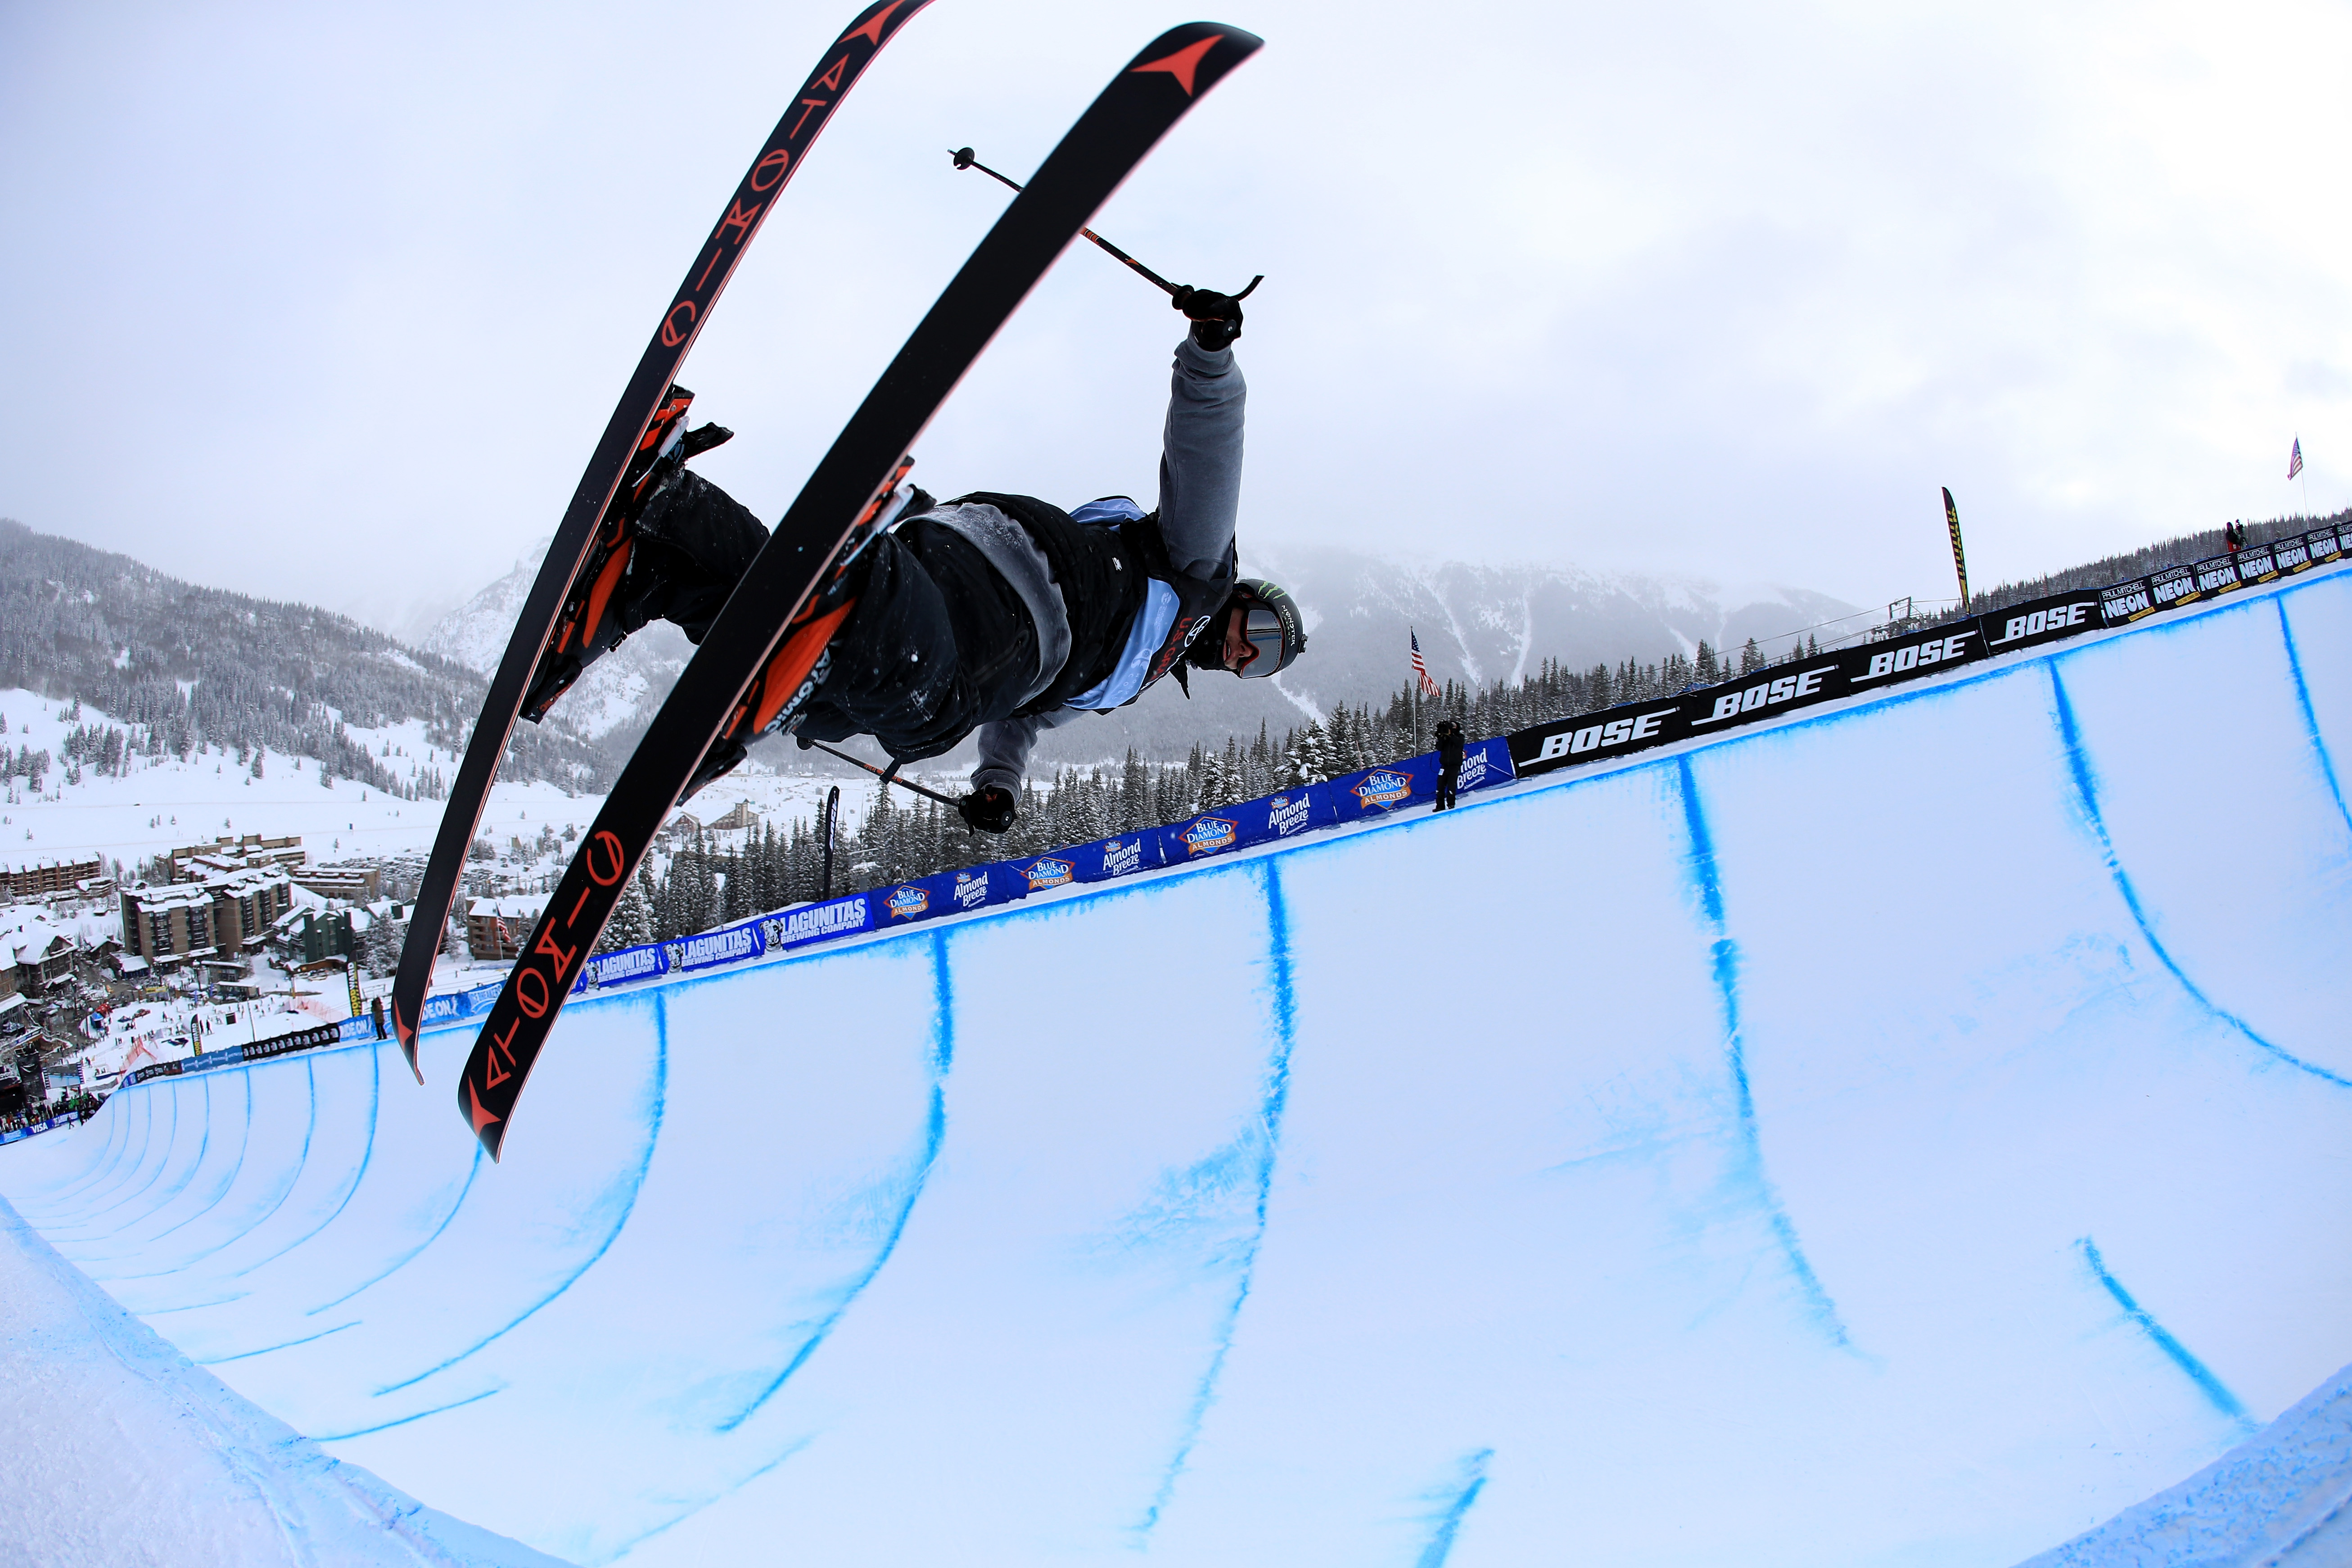 Gus Kenworthy competes in the final round of the FIS Freestyle Ski World Cup 2017 Men's Ski Halfpipe during The Toyota U.S. Grand Prix at Copper Mountain on December 17, 2016 in Copper Mountain, Colorado. Sean M. Haffey—Getty Images.